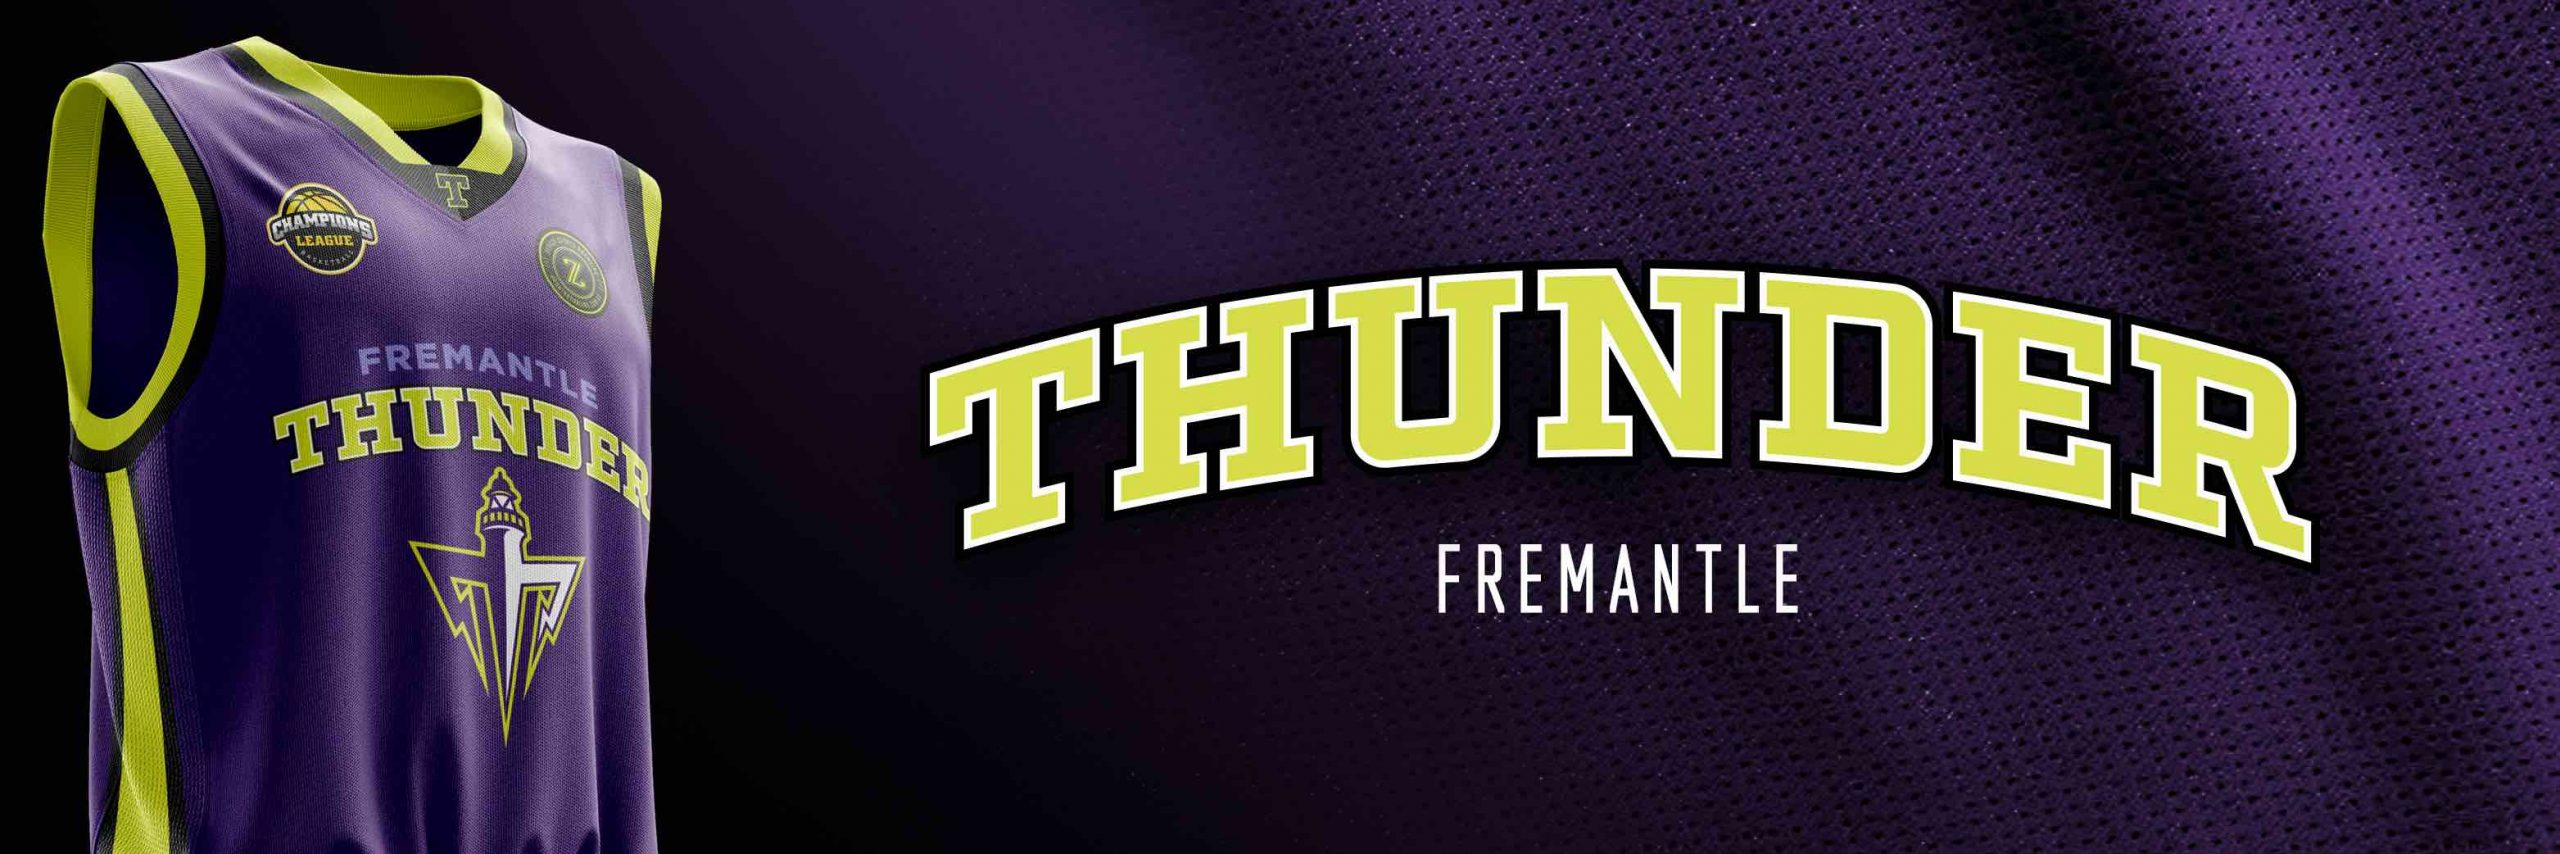 CLB 3x3 Basketball Fremantle Thunder, 3 on 3 basketball, Remote Regional Communities